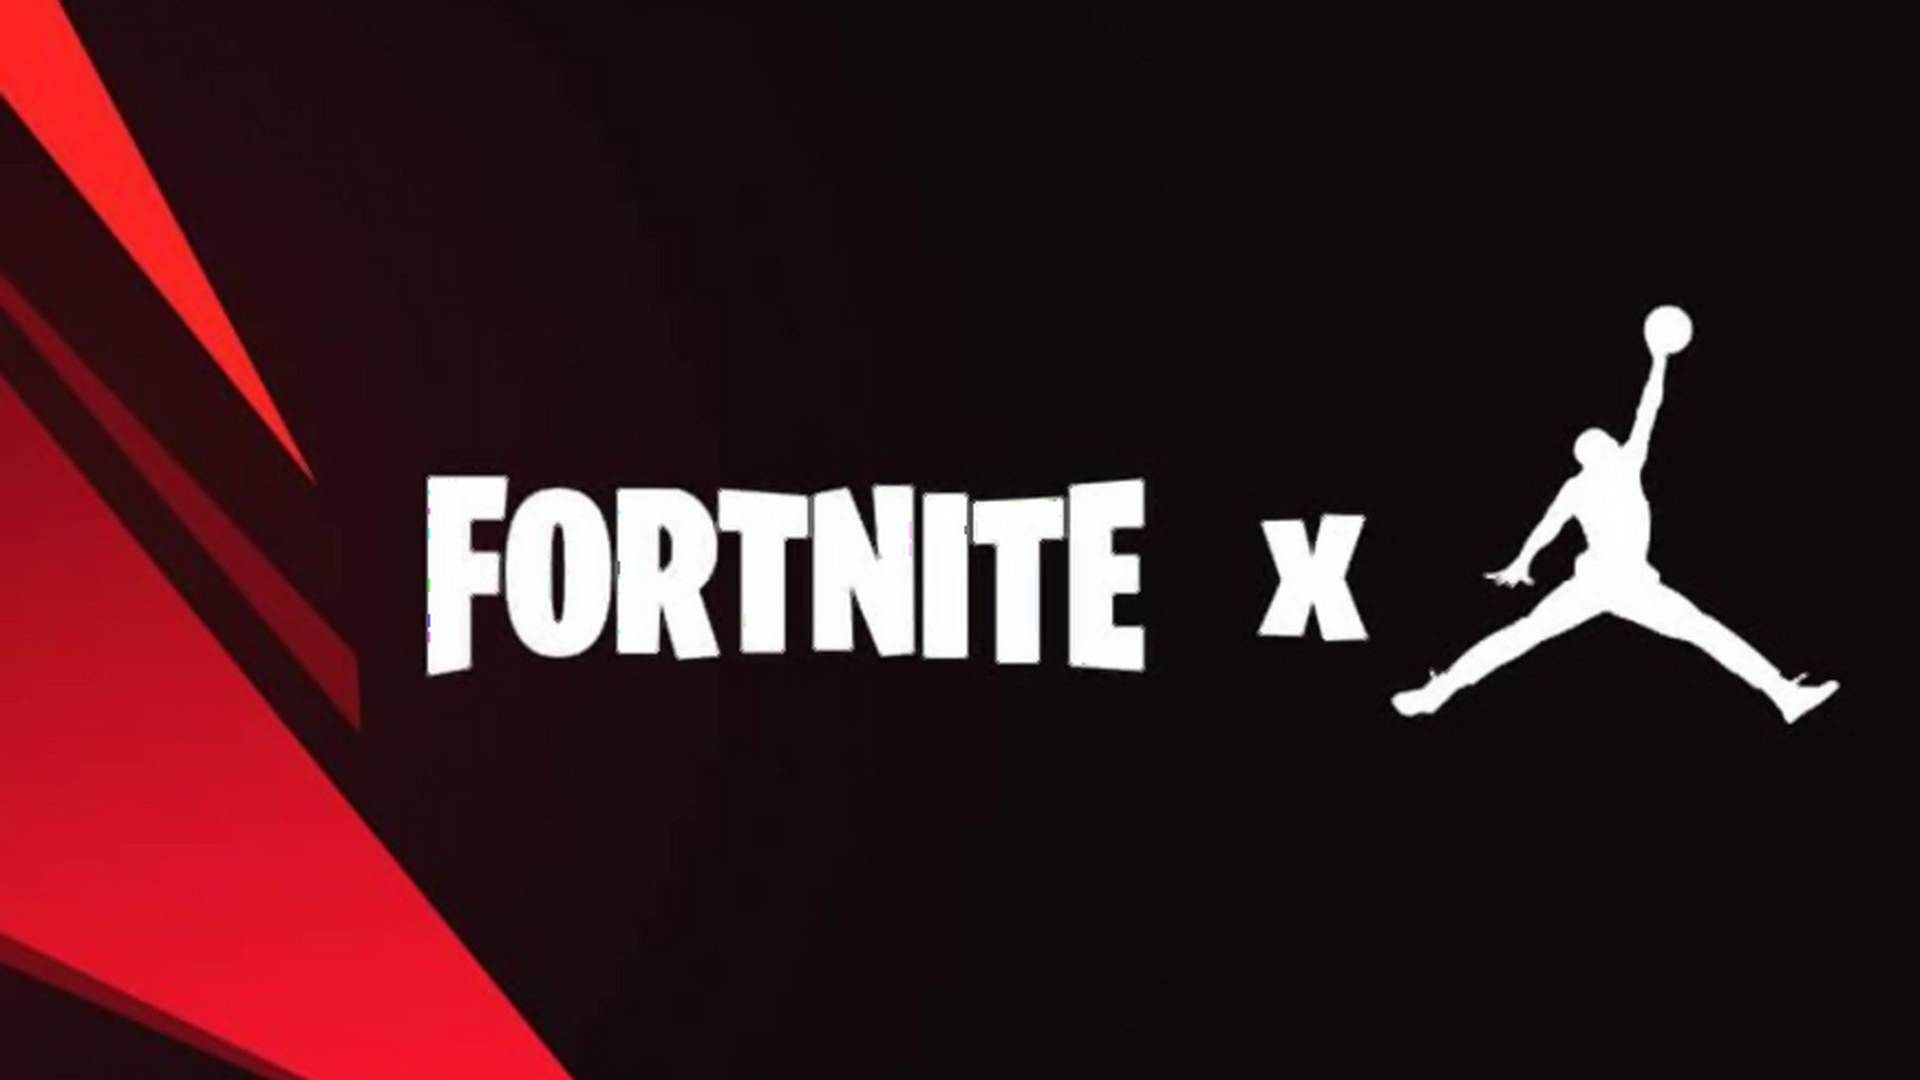 Fortnite kündigt Kollabo mit Michael Jordan an